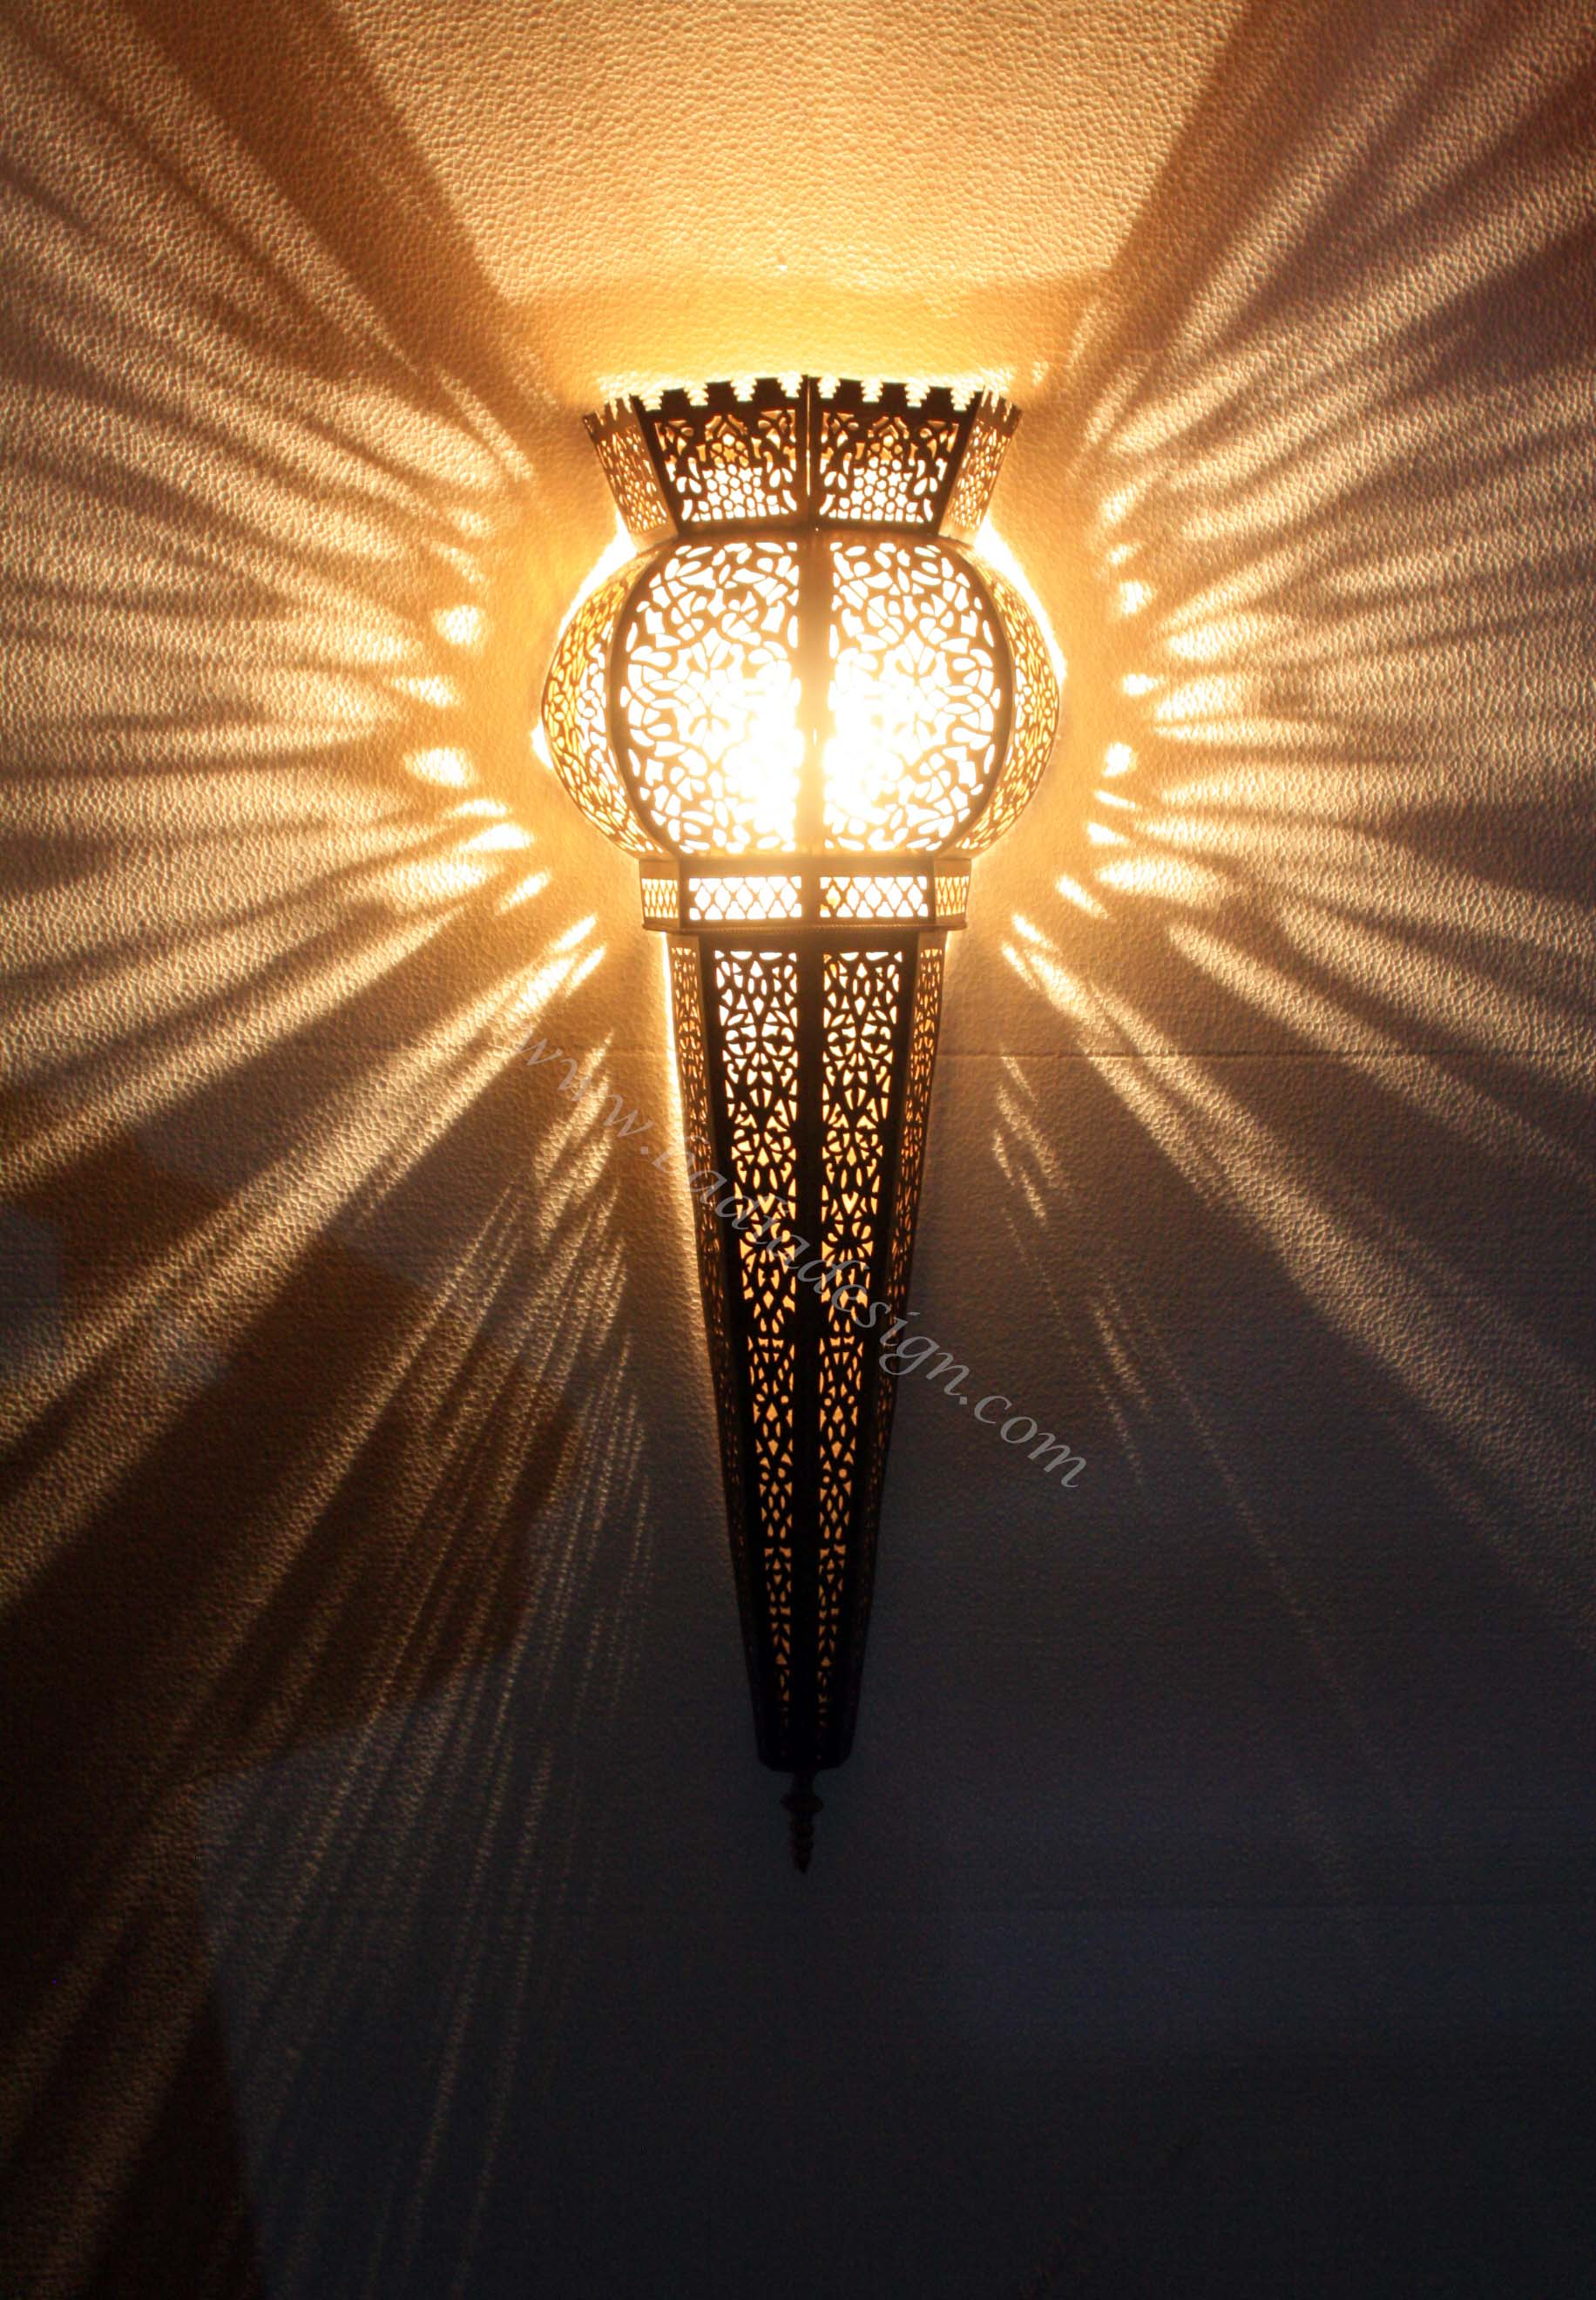 moroccan-lighting-indianapolis.jpg